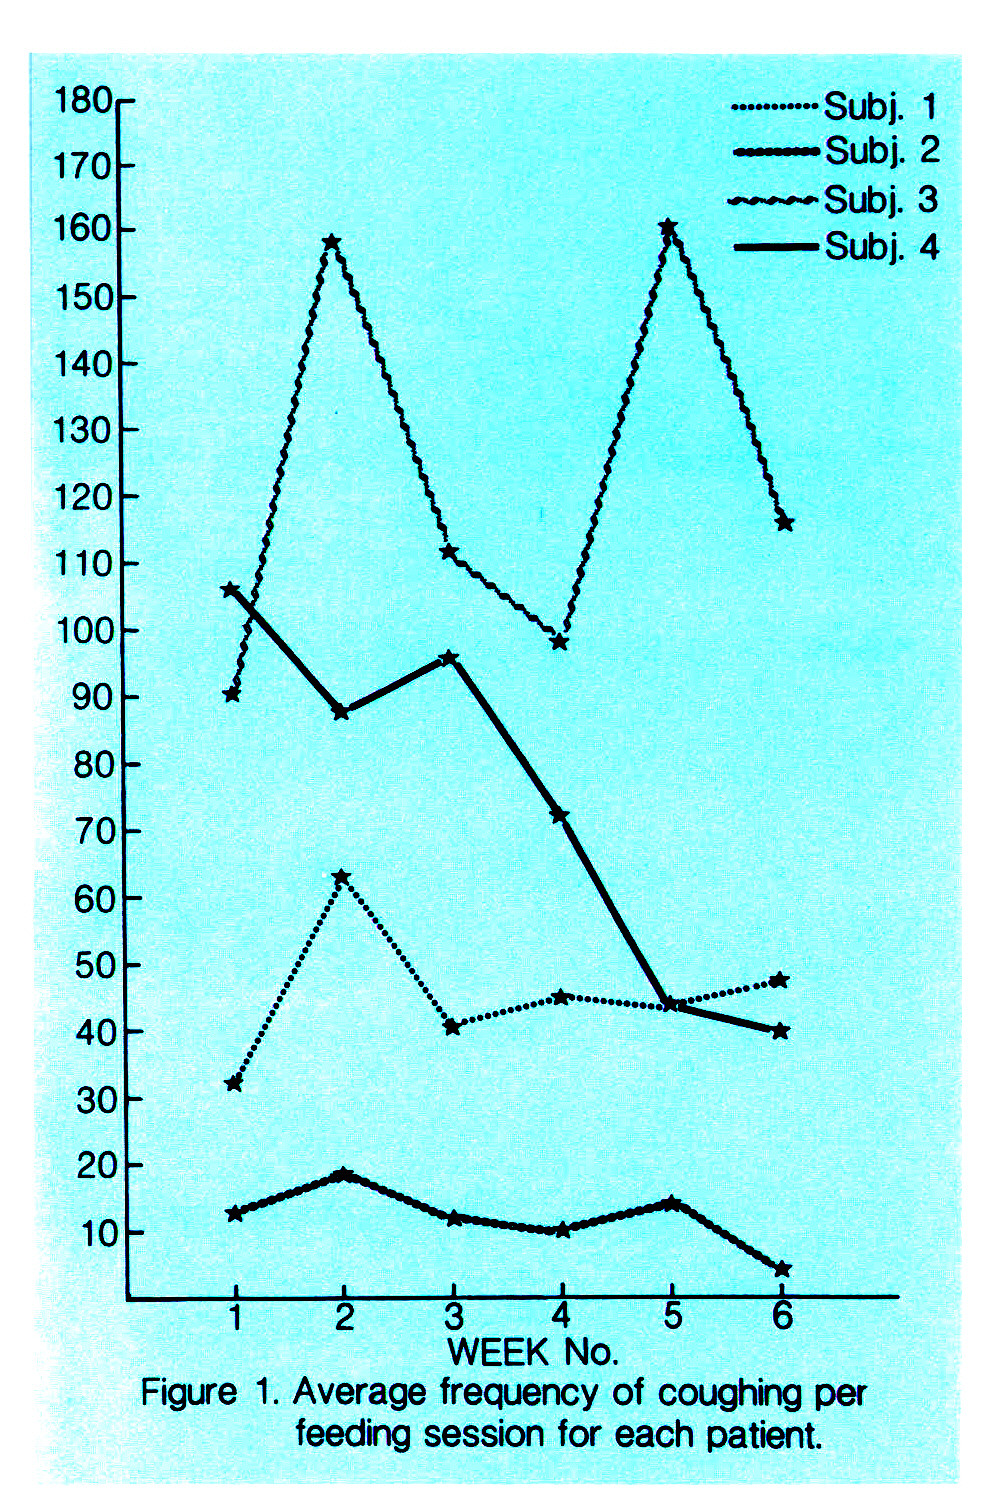 Figure 1. Average frequency of coughing per feeding session for each patient.